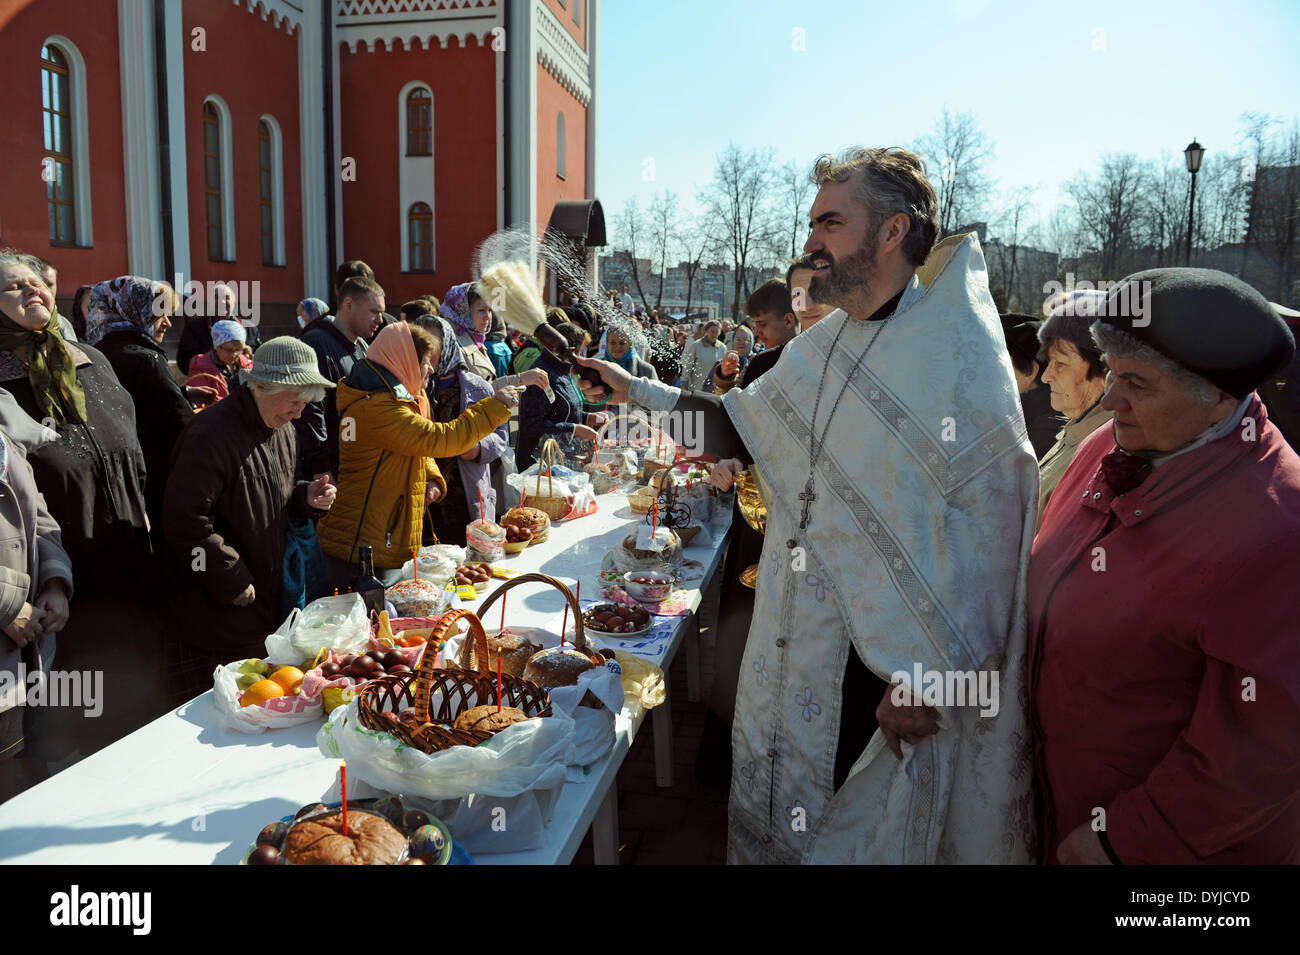 Odintsovo, Moscow, Russia. 19 April 2014A Russian Orthodox priest blesses Easter food and believers prior to the Orthodox Easter holiday celebration at St. George Cathedral in Odintsovo, outside Moscow, Russia, 19 April 2014. Easter is the main religious celebration for Russian Orthodox Christians. Credit:  MAGPHOTO/Alamy Live News - Stock Image